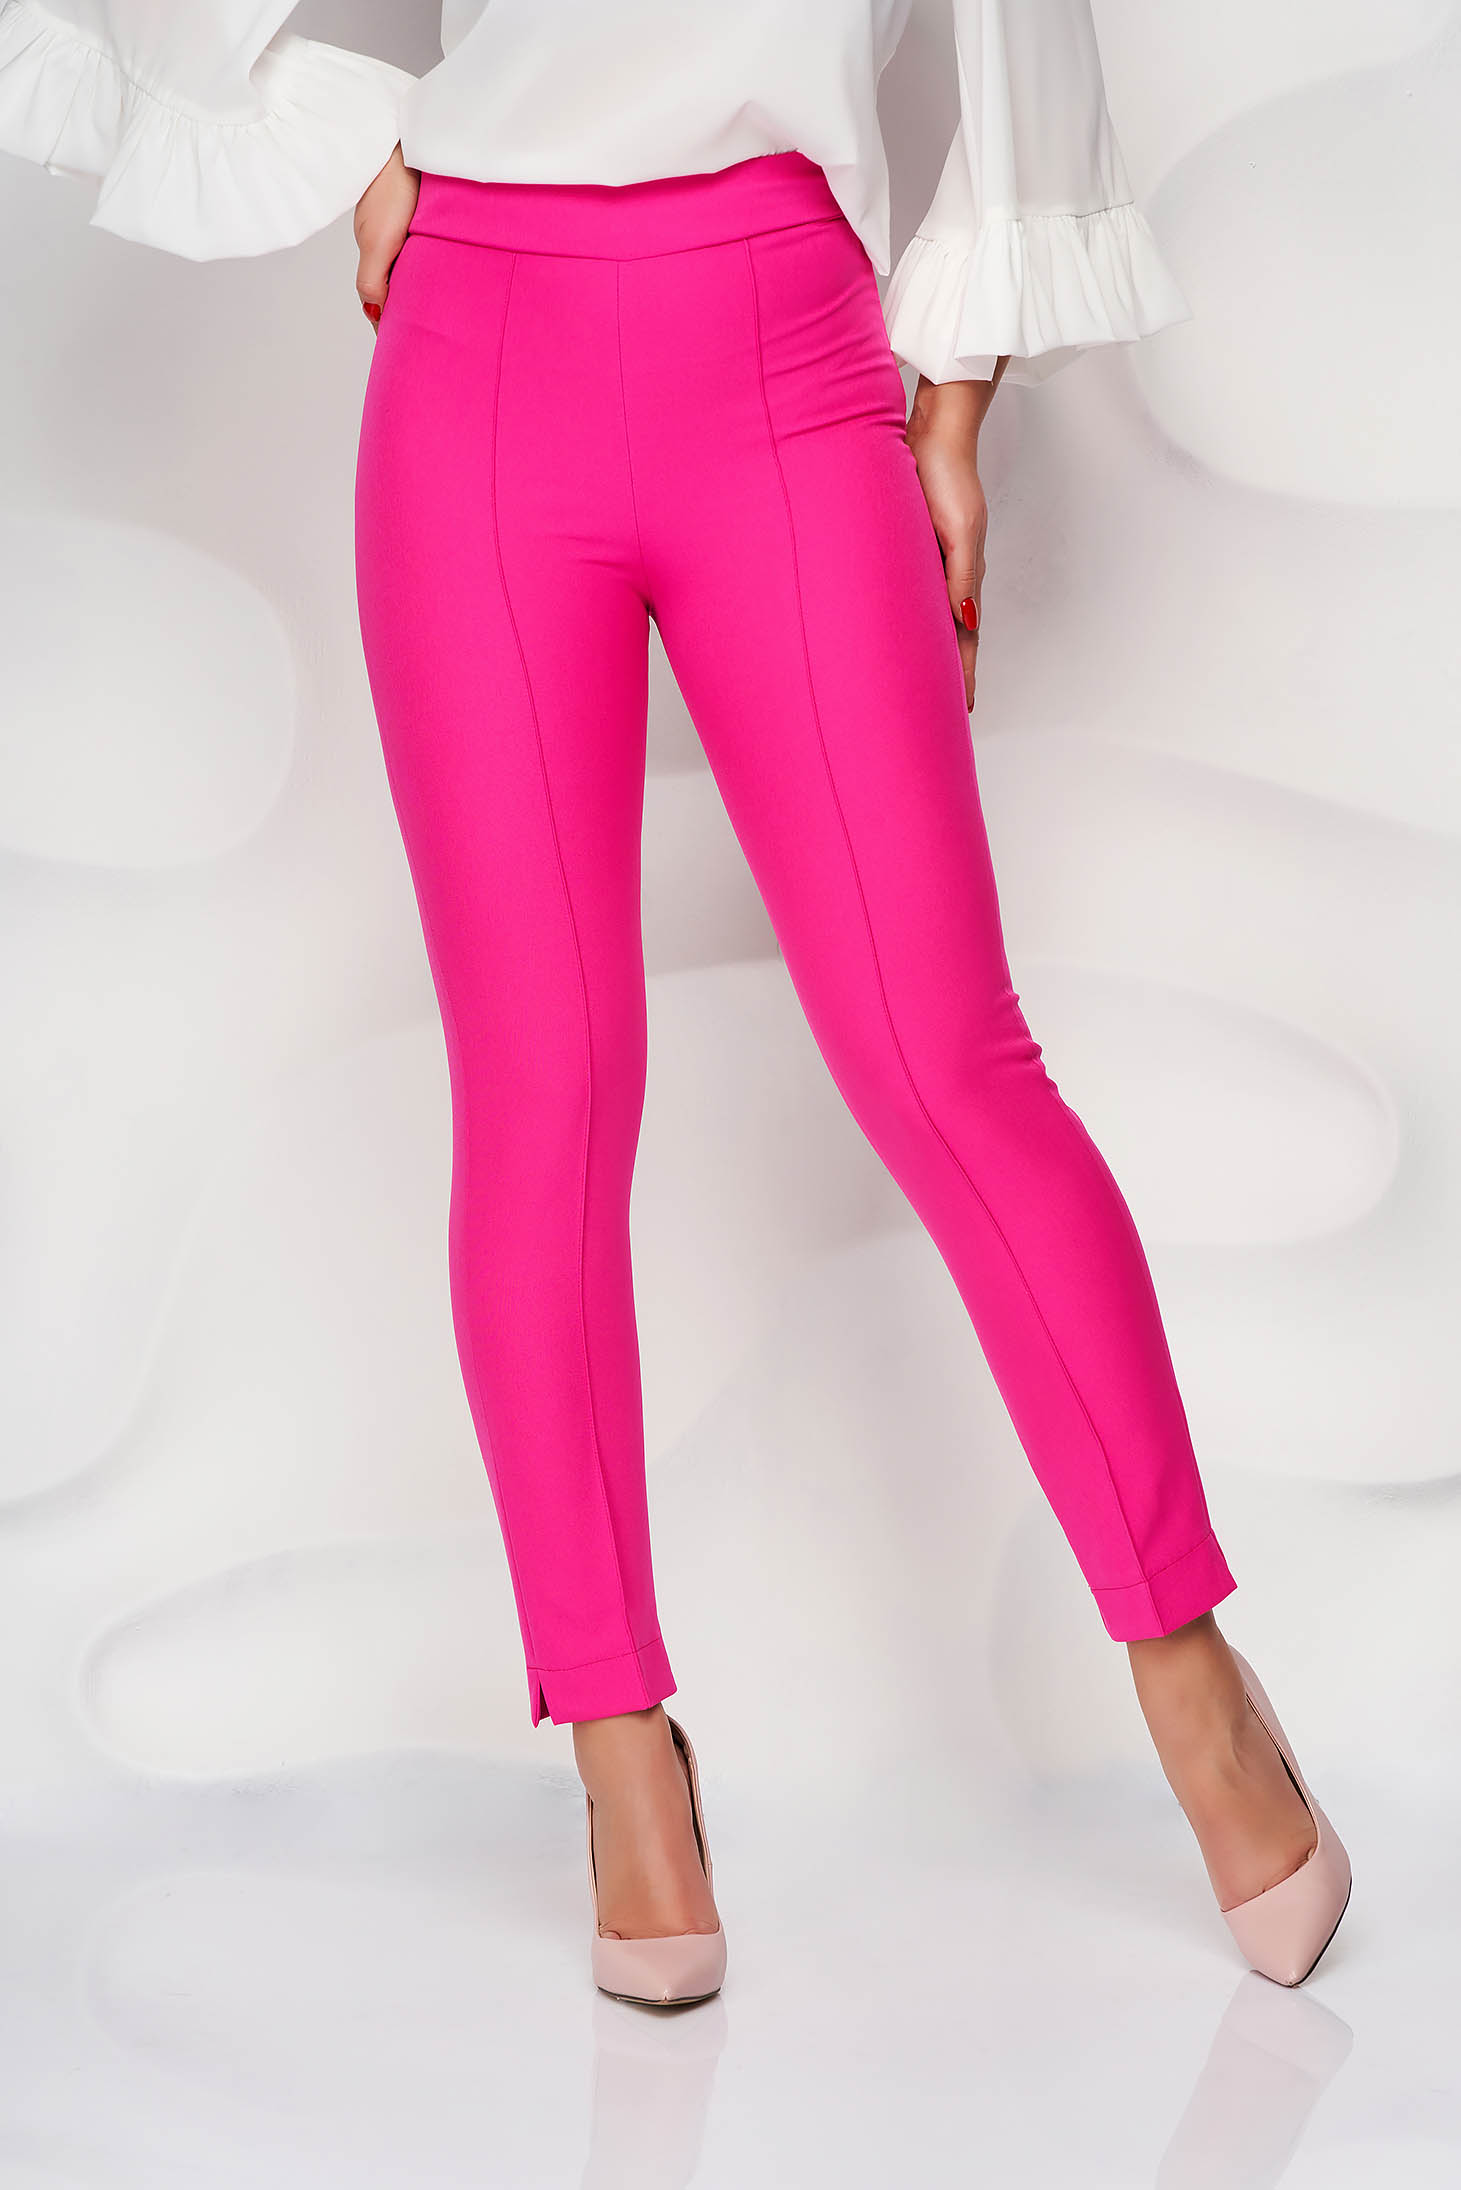 StarShinerS fuchsia trousers office high waisted slightly elastic fabric conical